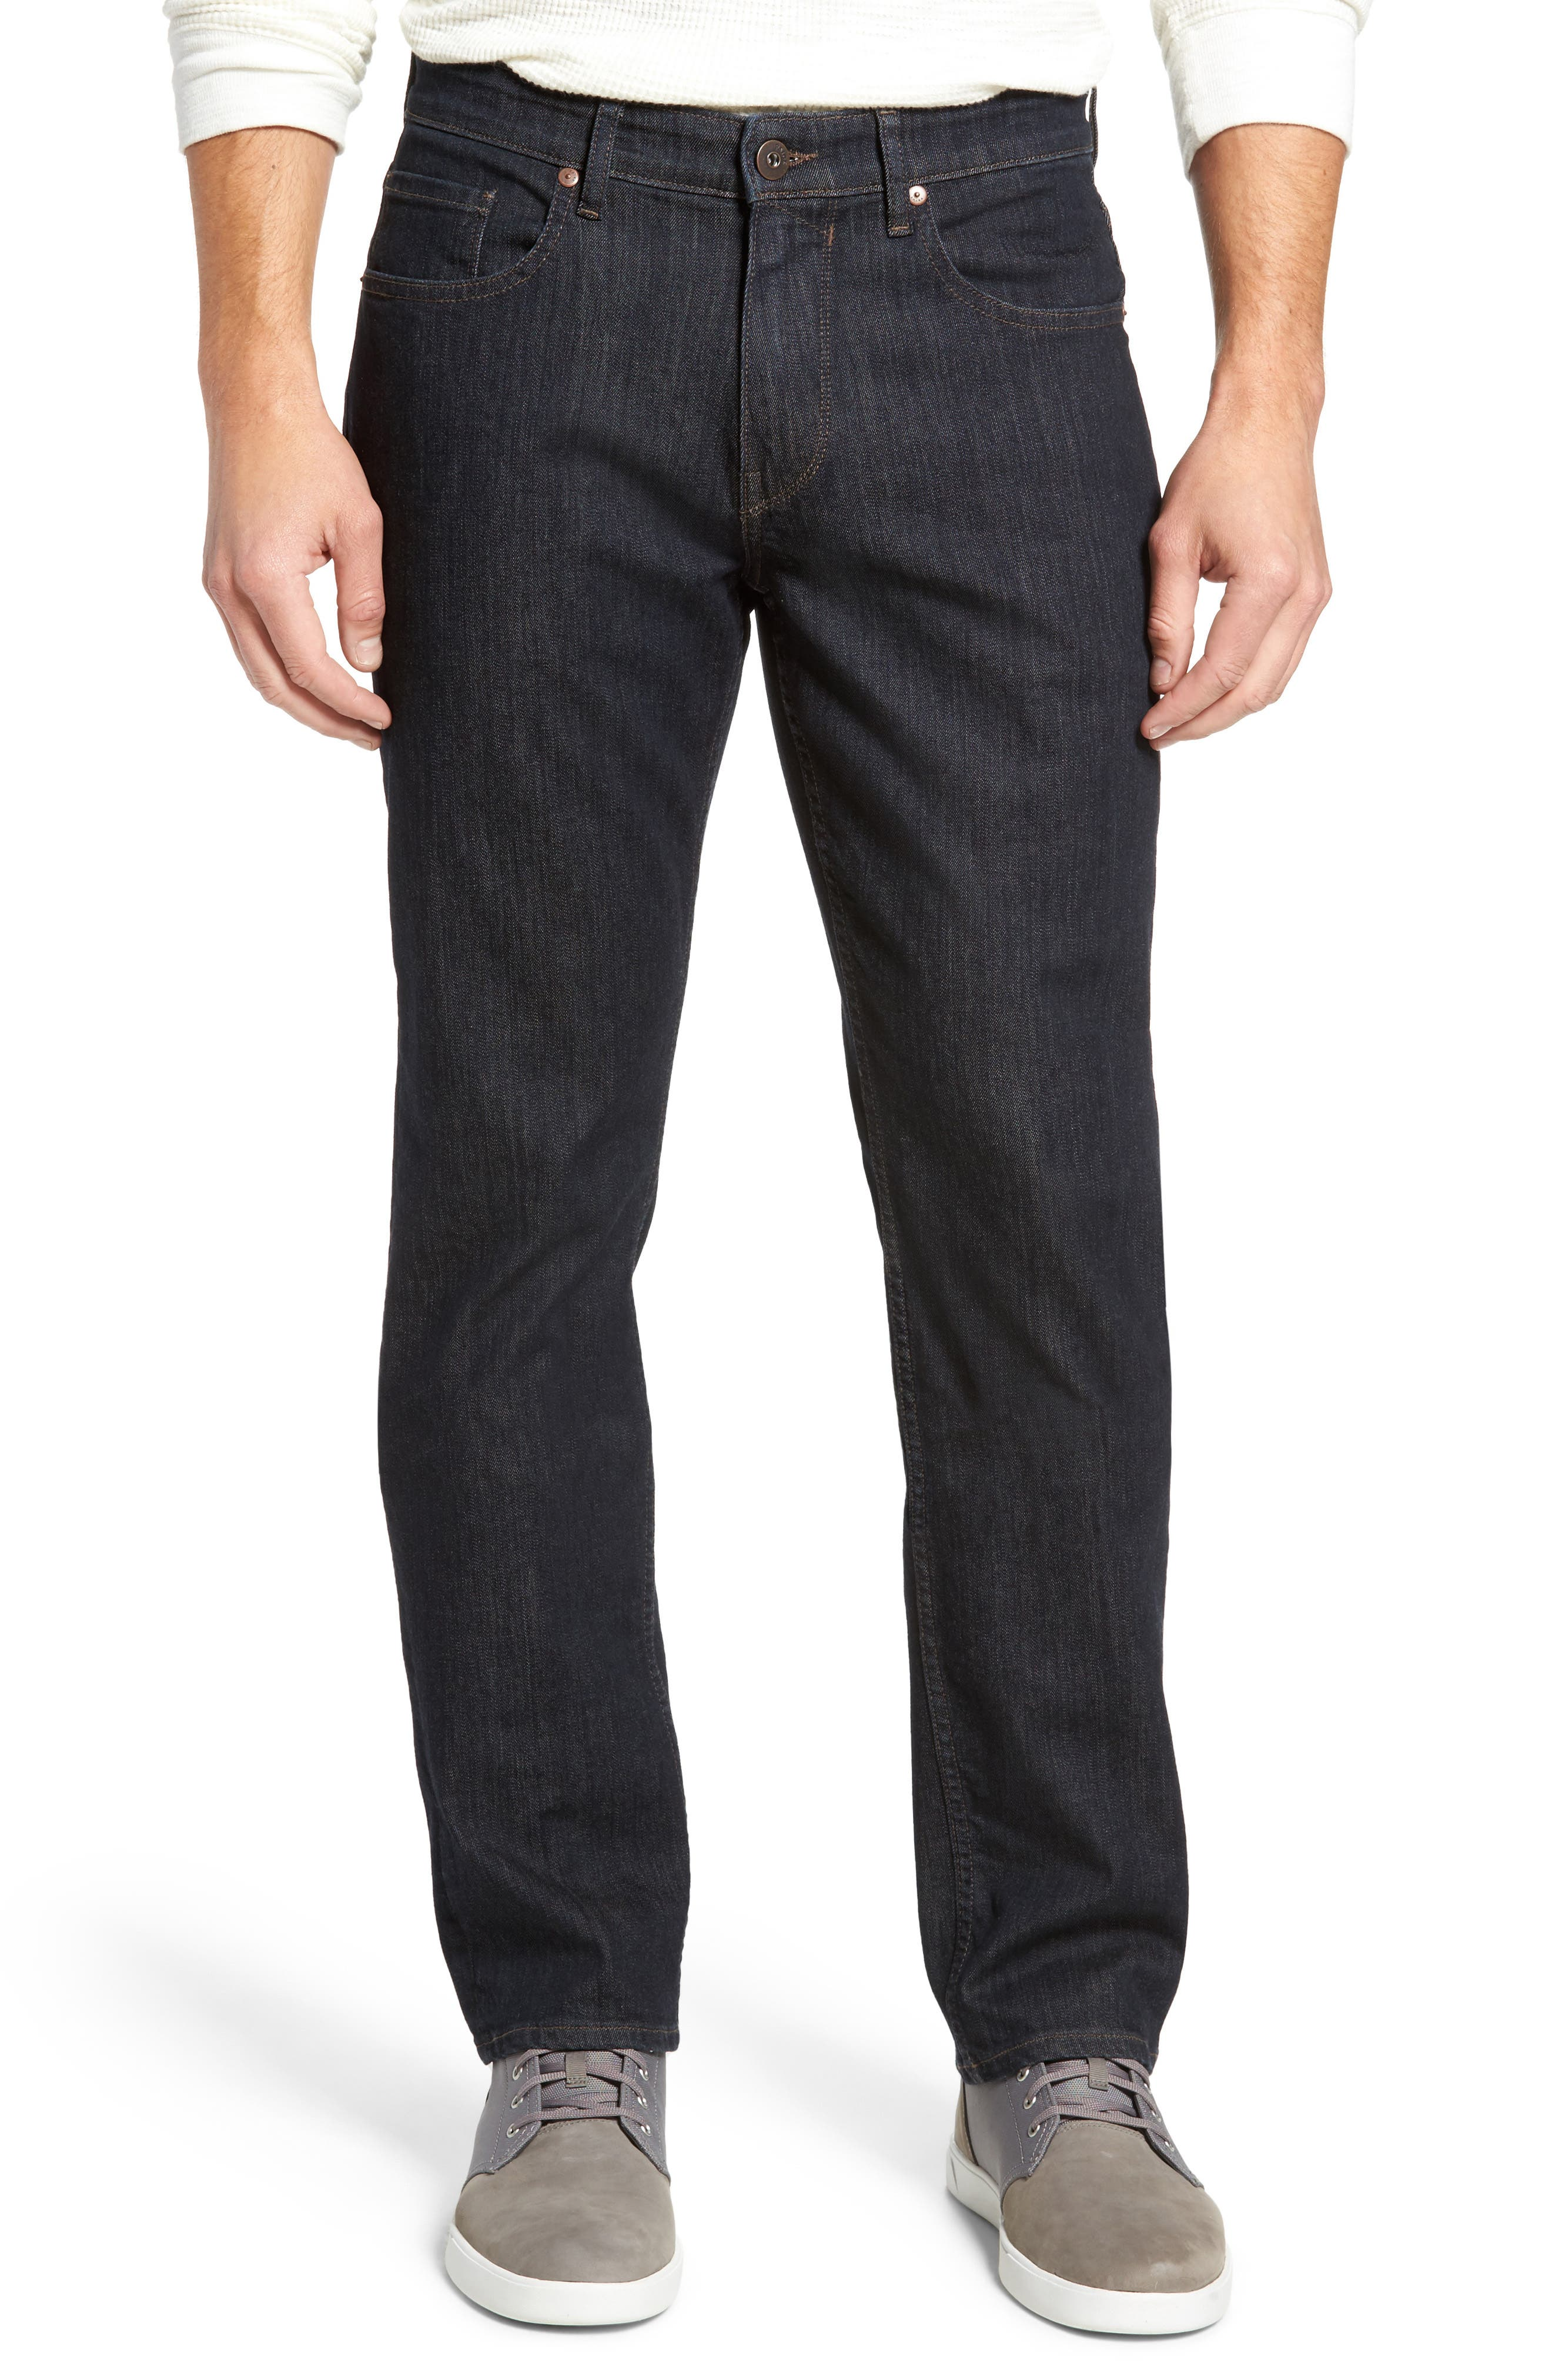 Normandie Straight Leg Jeans,                             Main thumbnail 1, color,                             FILLMORE